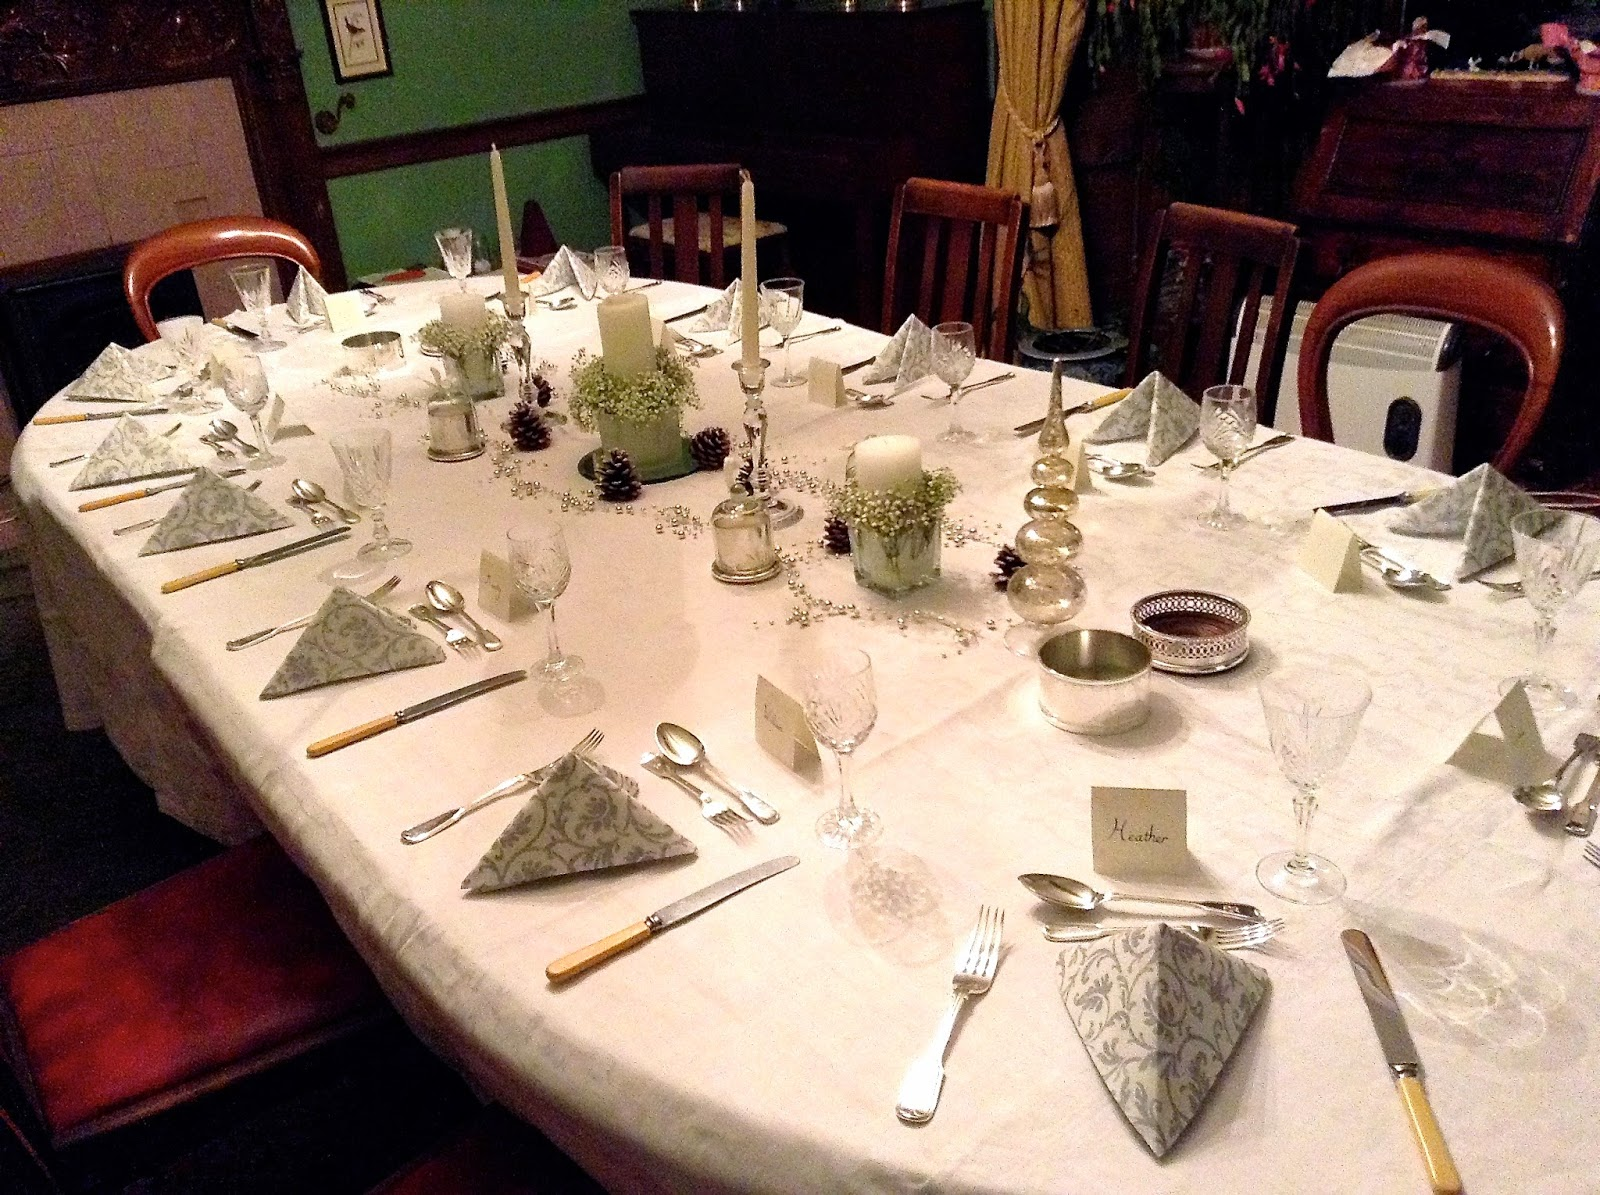 Christmas dinner table with white & silver napkins, candles, ornaments & pine cones